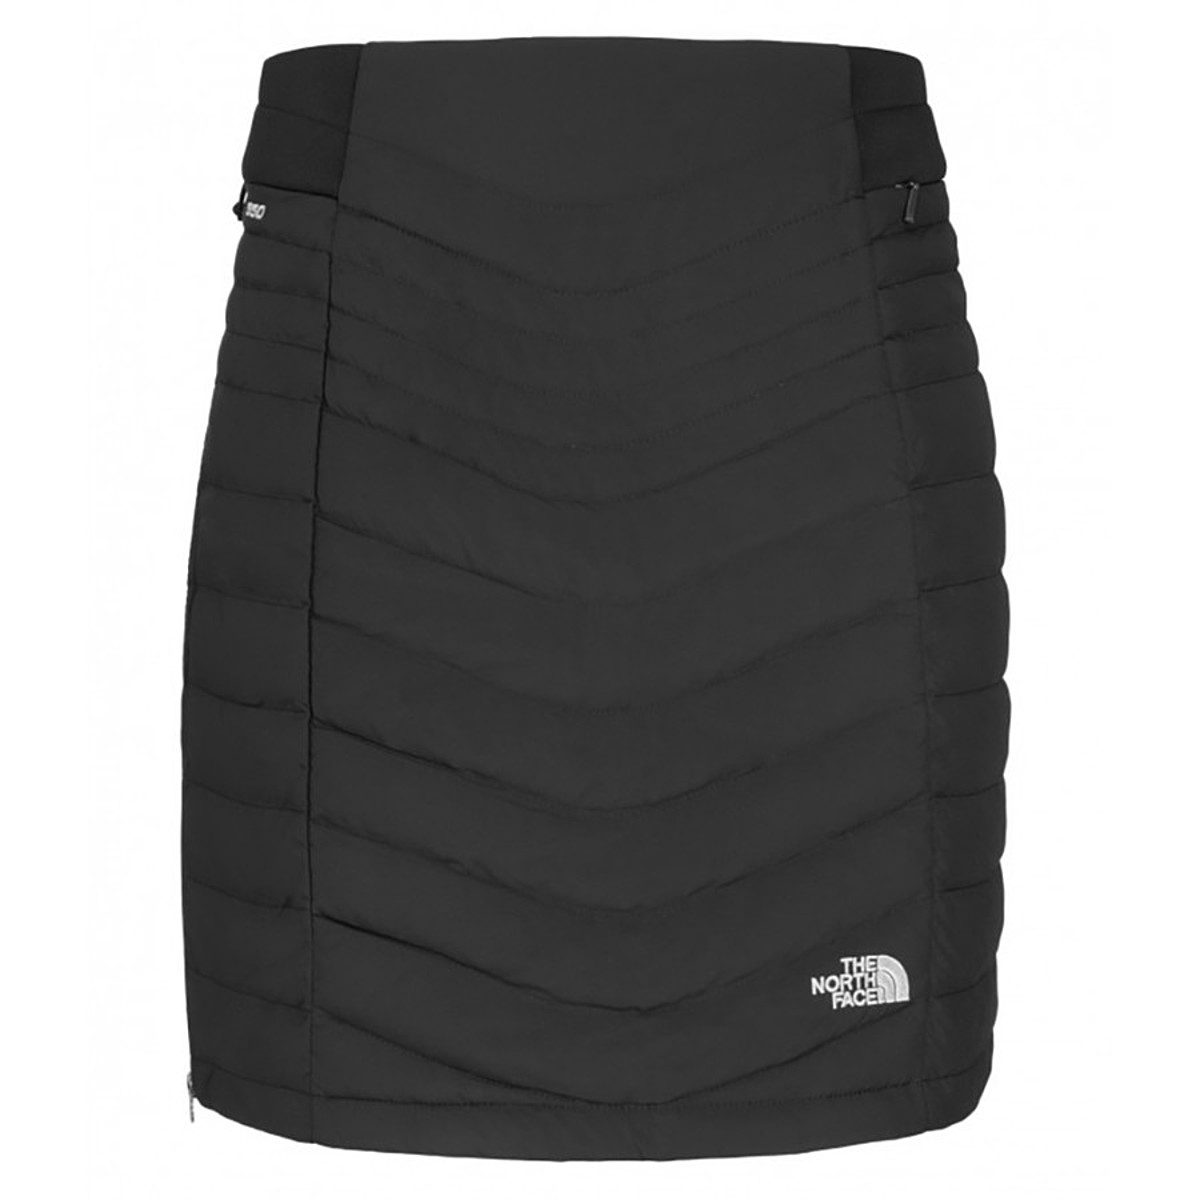 The North Face Kailash Skirt